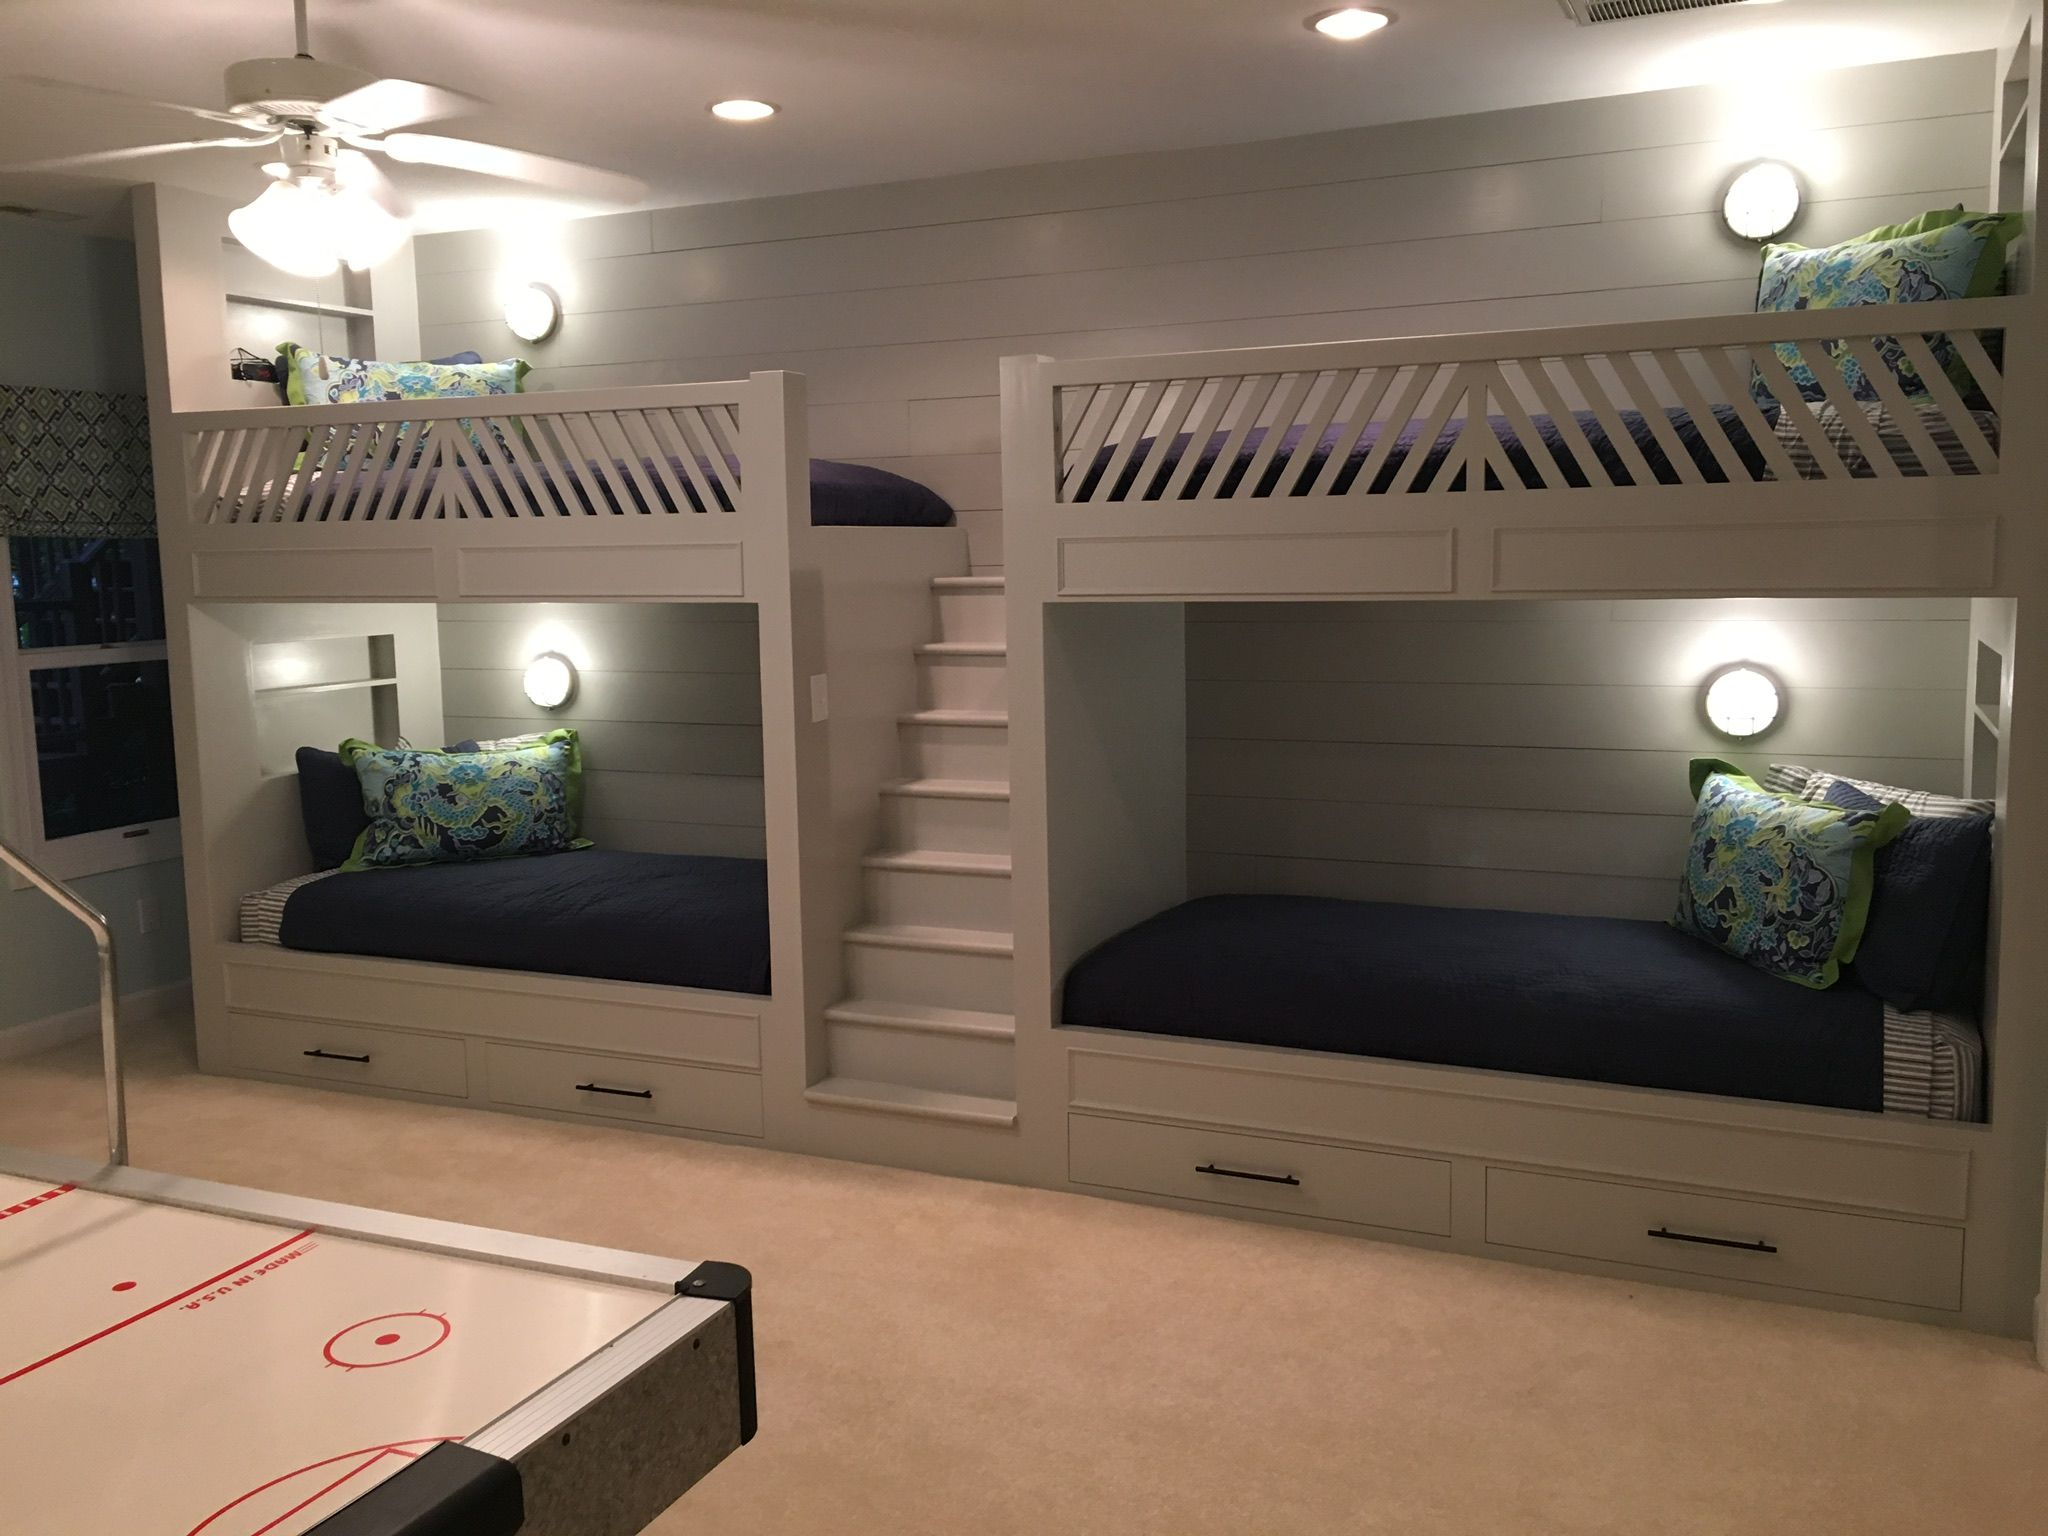 Quadruple bunk beds with drawers, stairs and niches with